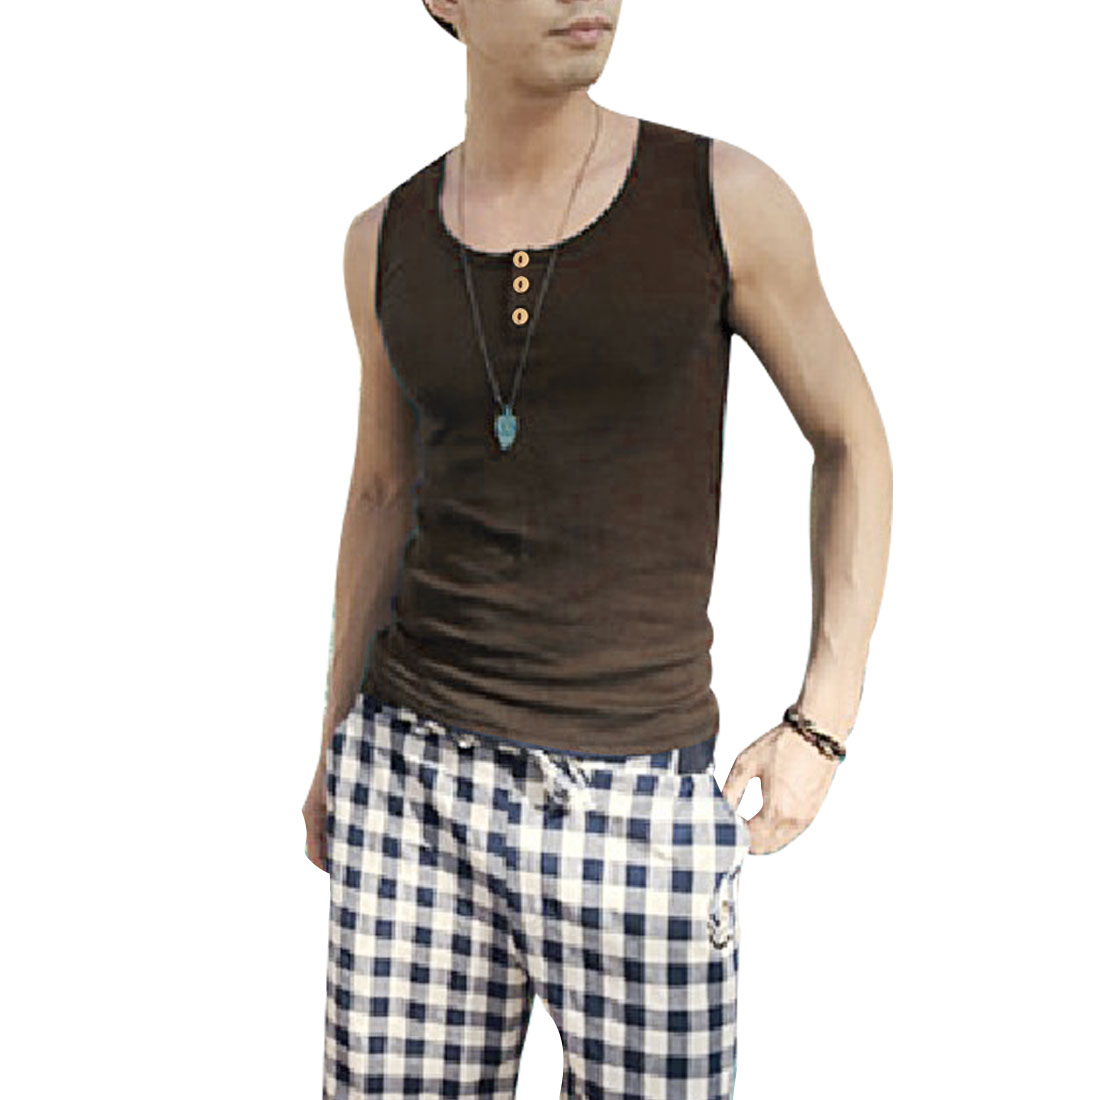 New Fashion Mans Brown Scoop Neck Button Front Decor Slim Fit Tank Top S